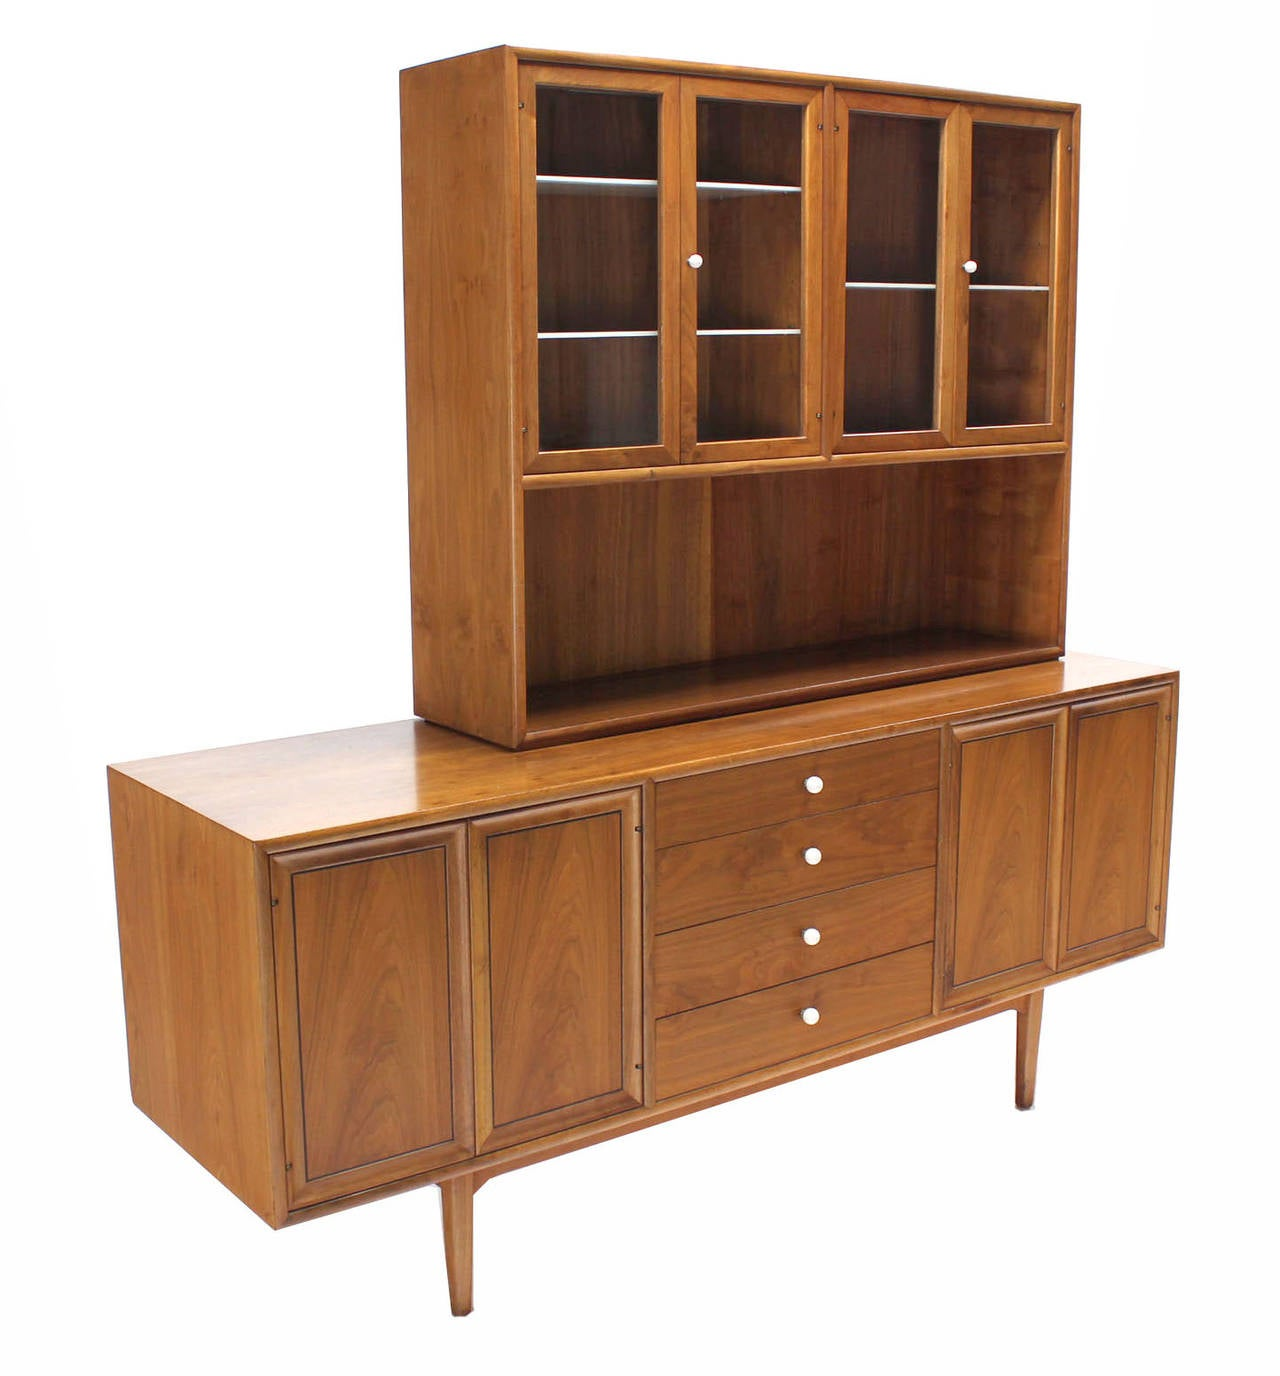 Drexel Declaration walnut sideboard credenza hutch light up cabinet. Lots of storage space beautiful looking walnut wood pattern with porcelain pulls.